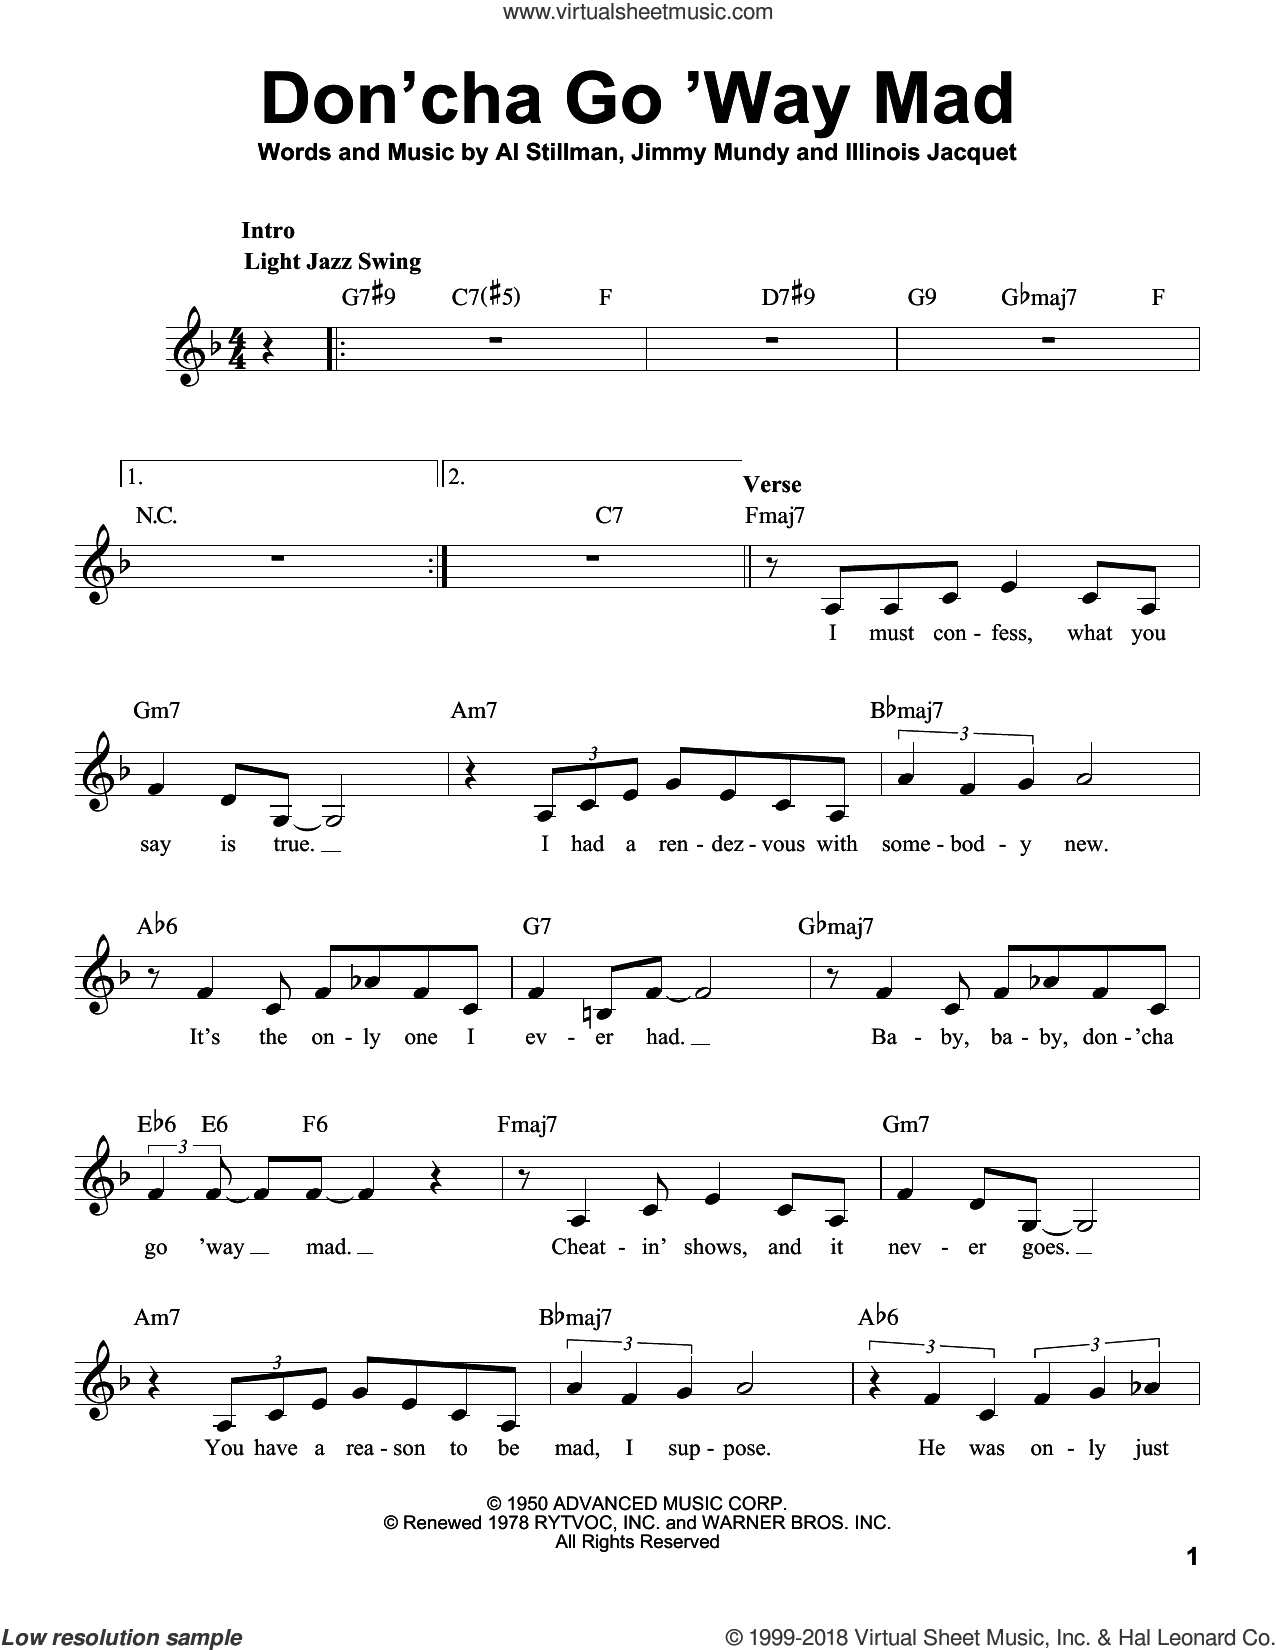 Don'cha Go 'Way Mad sheet music for voice solo by Ella Fitzgerald, Frank Sinatra, Rosemary Clooney, Al Stillman, Illinois Jacquet and Jimmy Mundy, intermediate skill level